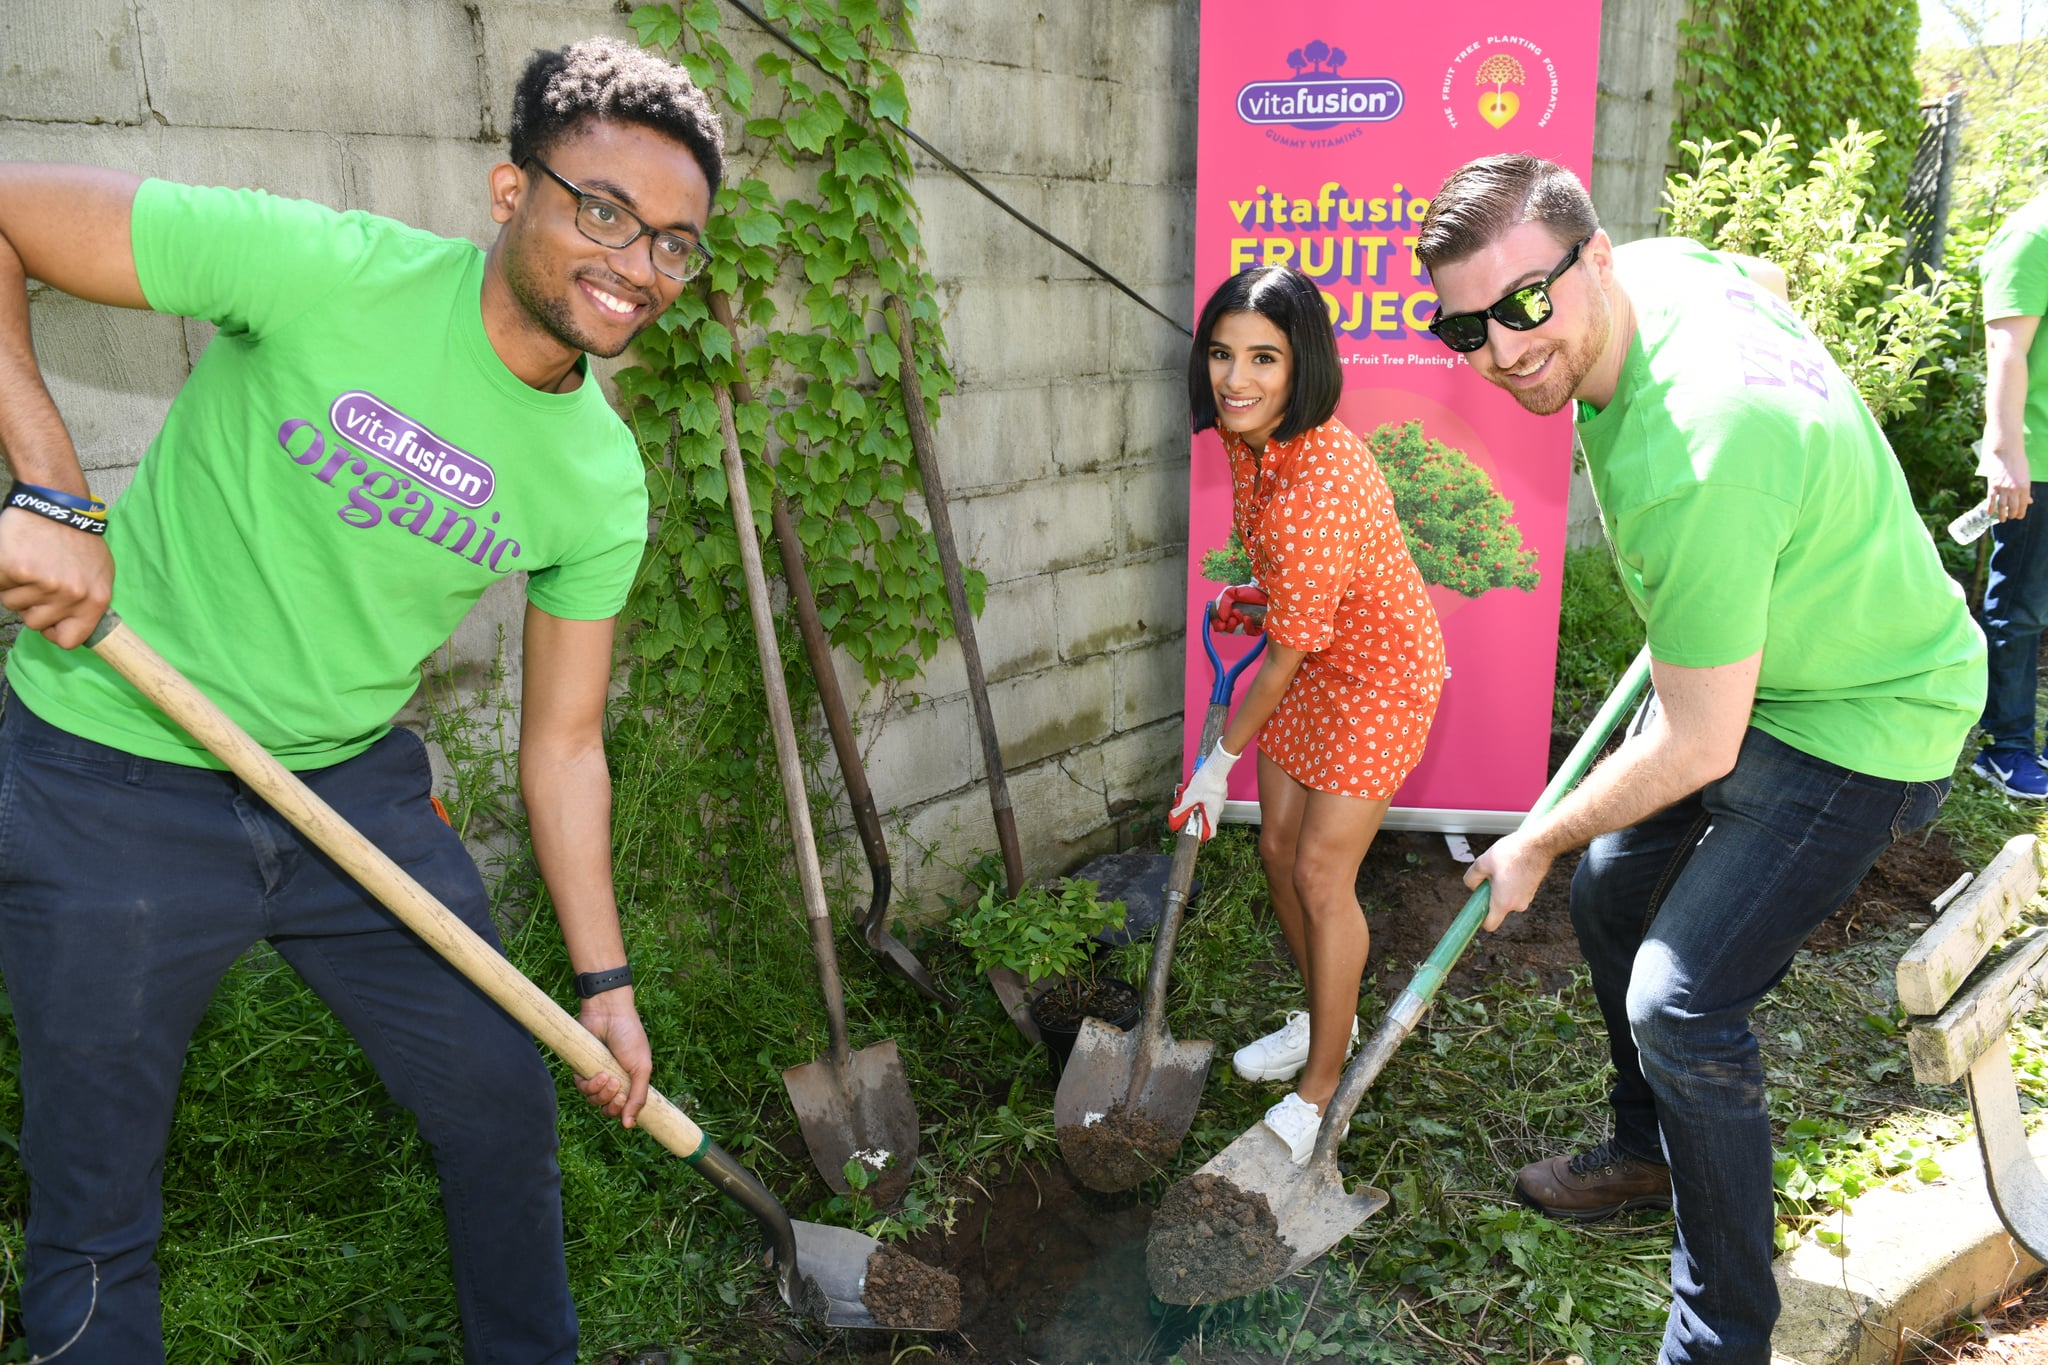 BROOKLYN, NEW YORK - MAY 16: Diane Guerrero attends vitafusion™ Fruit Tree Planting Project on May 16, 2019 in Brooklyn, New York. (Photo by Craig Barritt/Getty Images for vitafusion™ Gummy Vitamins)